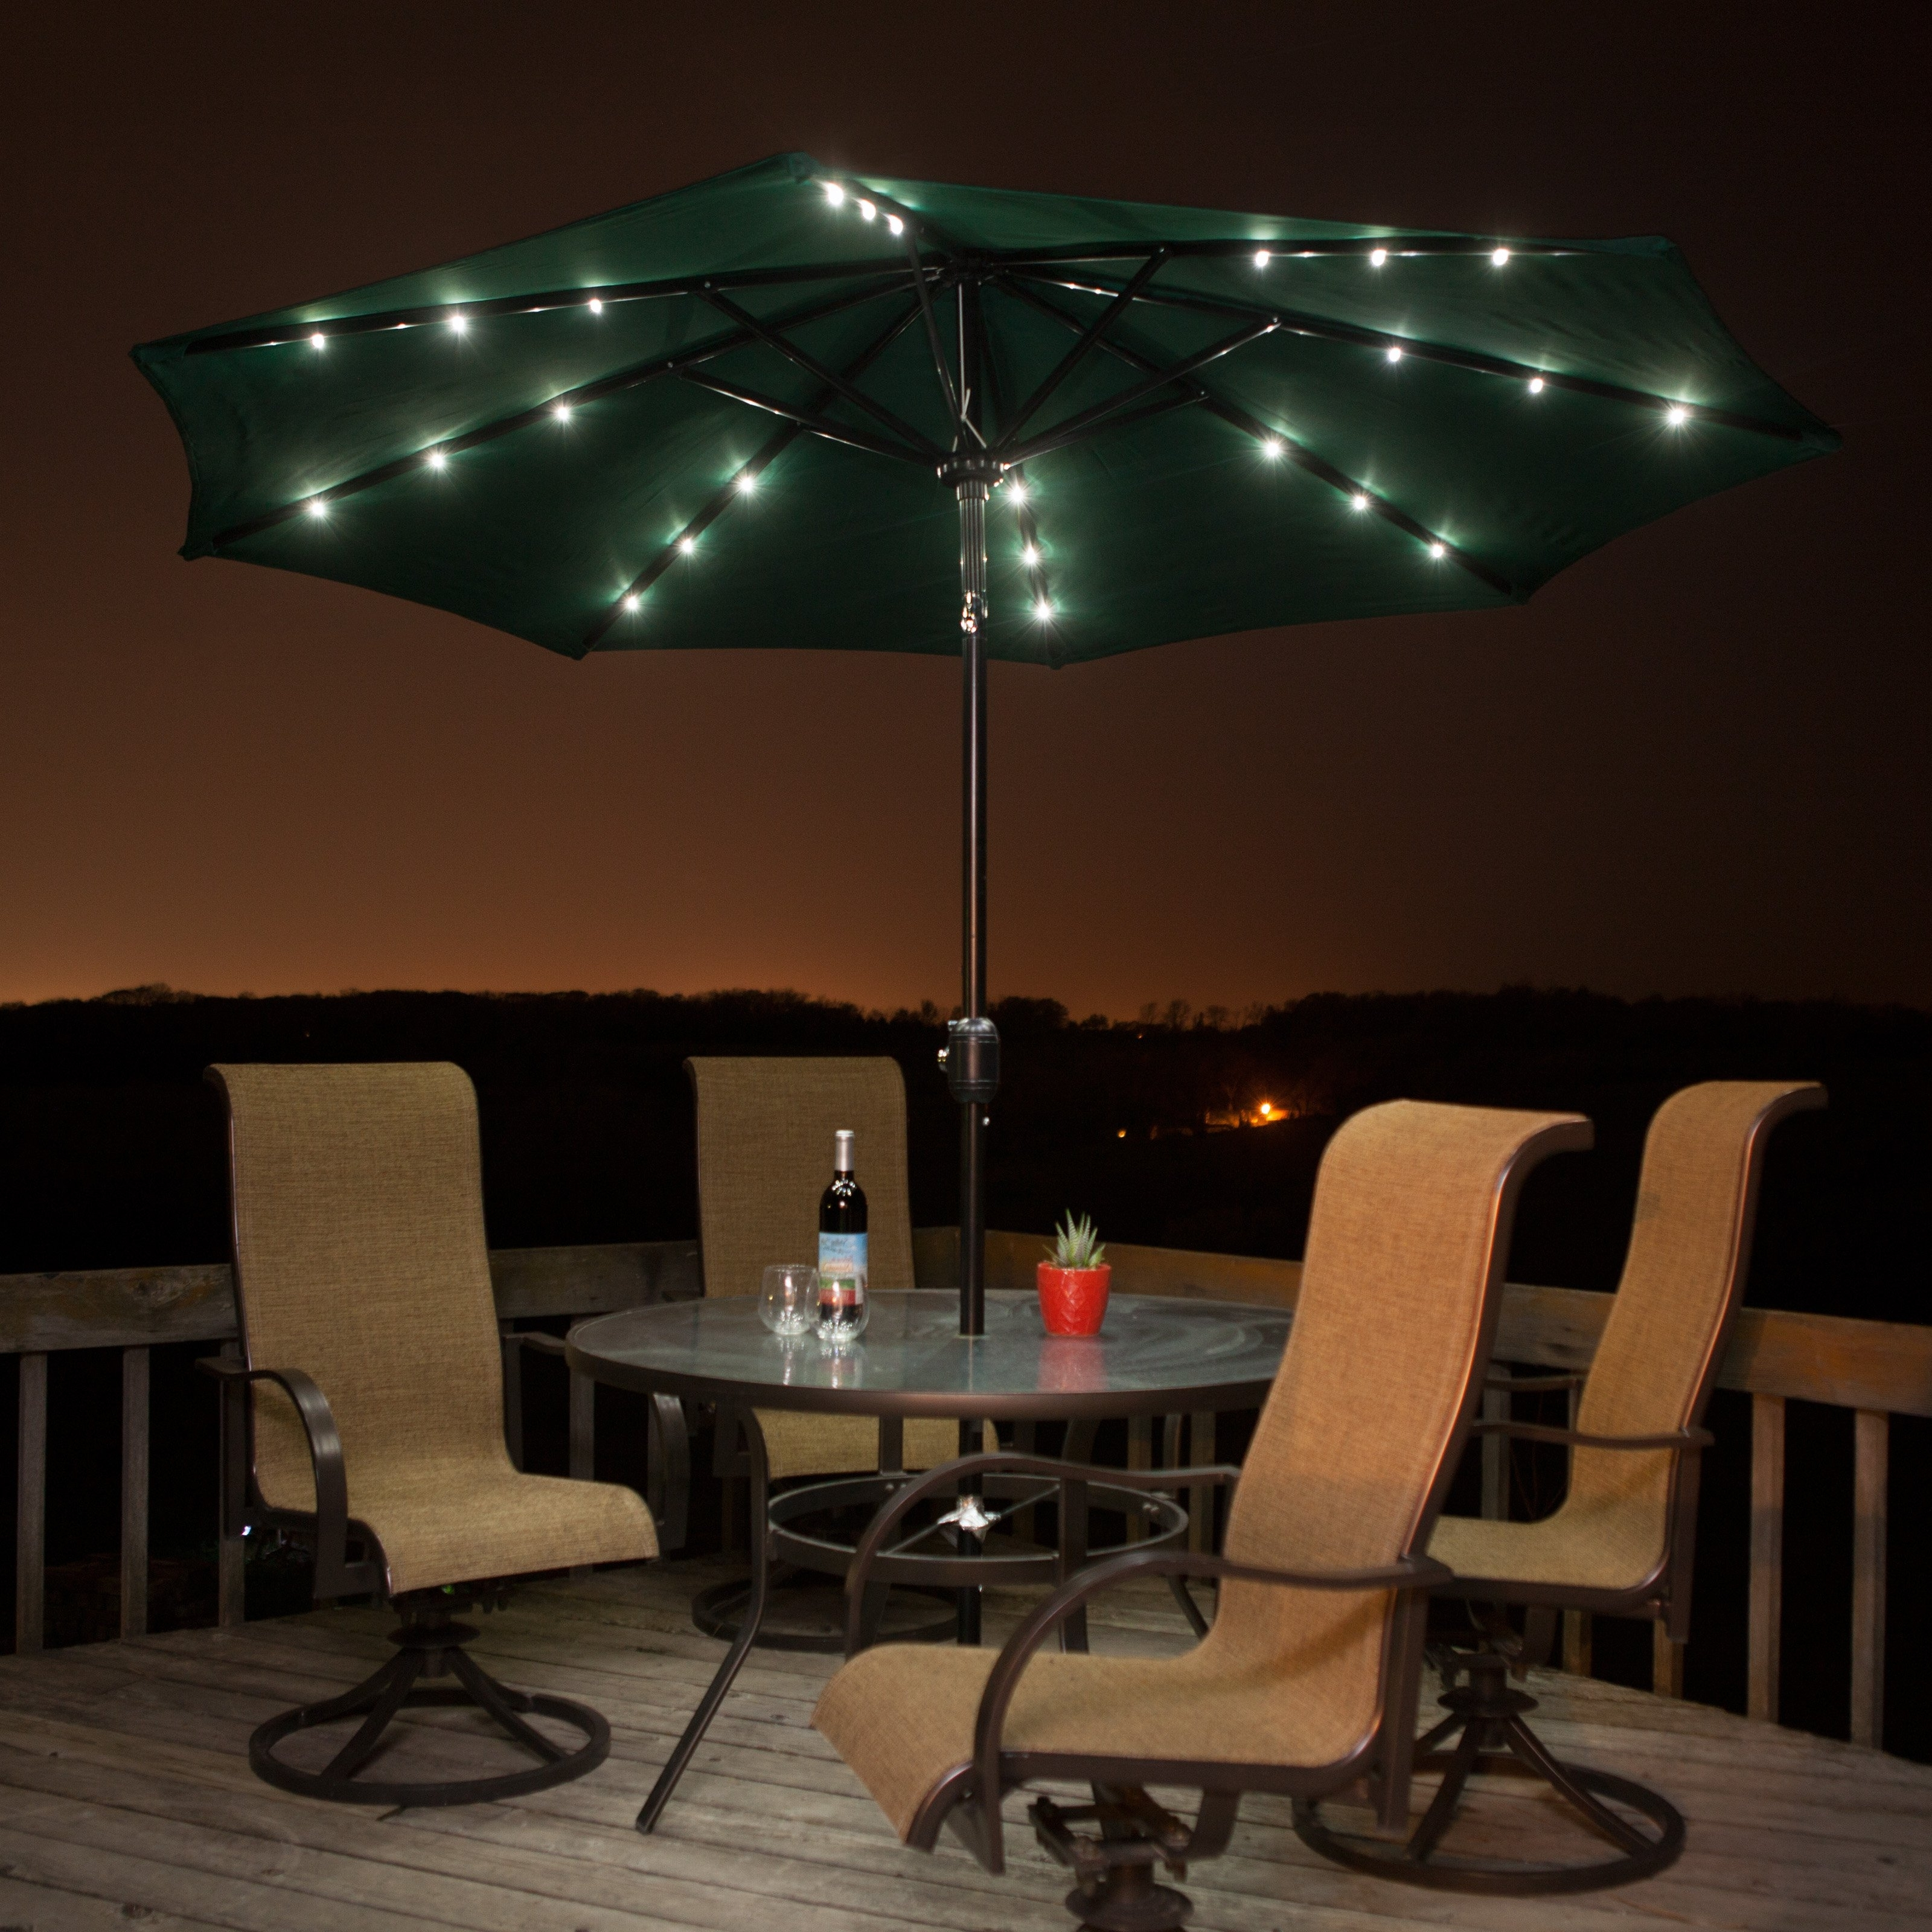 Best And Newest Lighted Patio Umbrellas Throughout Lighted Patio Umbrellas — Mistikcamping Home Design : Different (View 13 of 20)